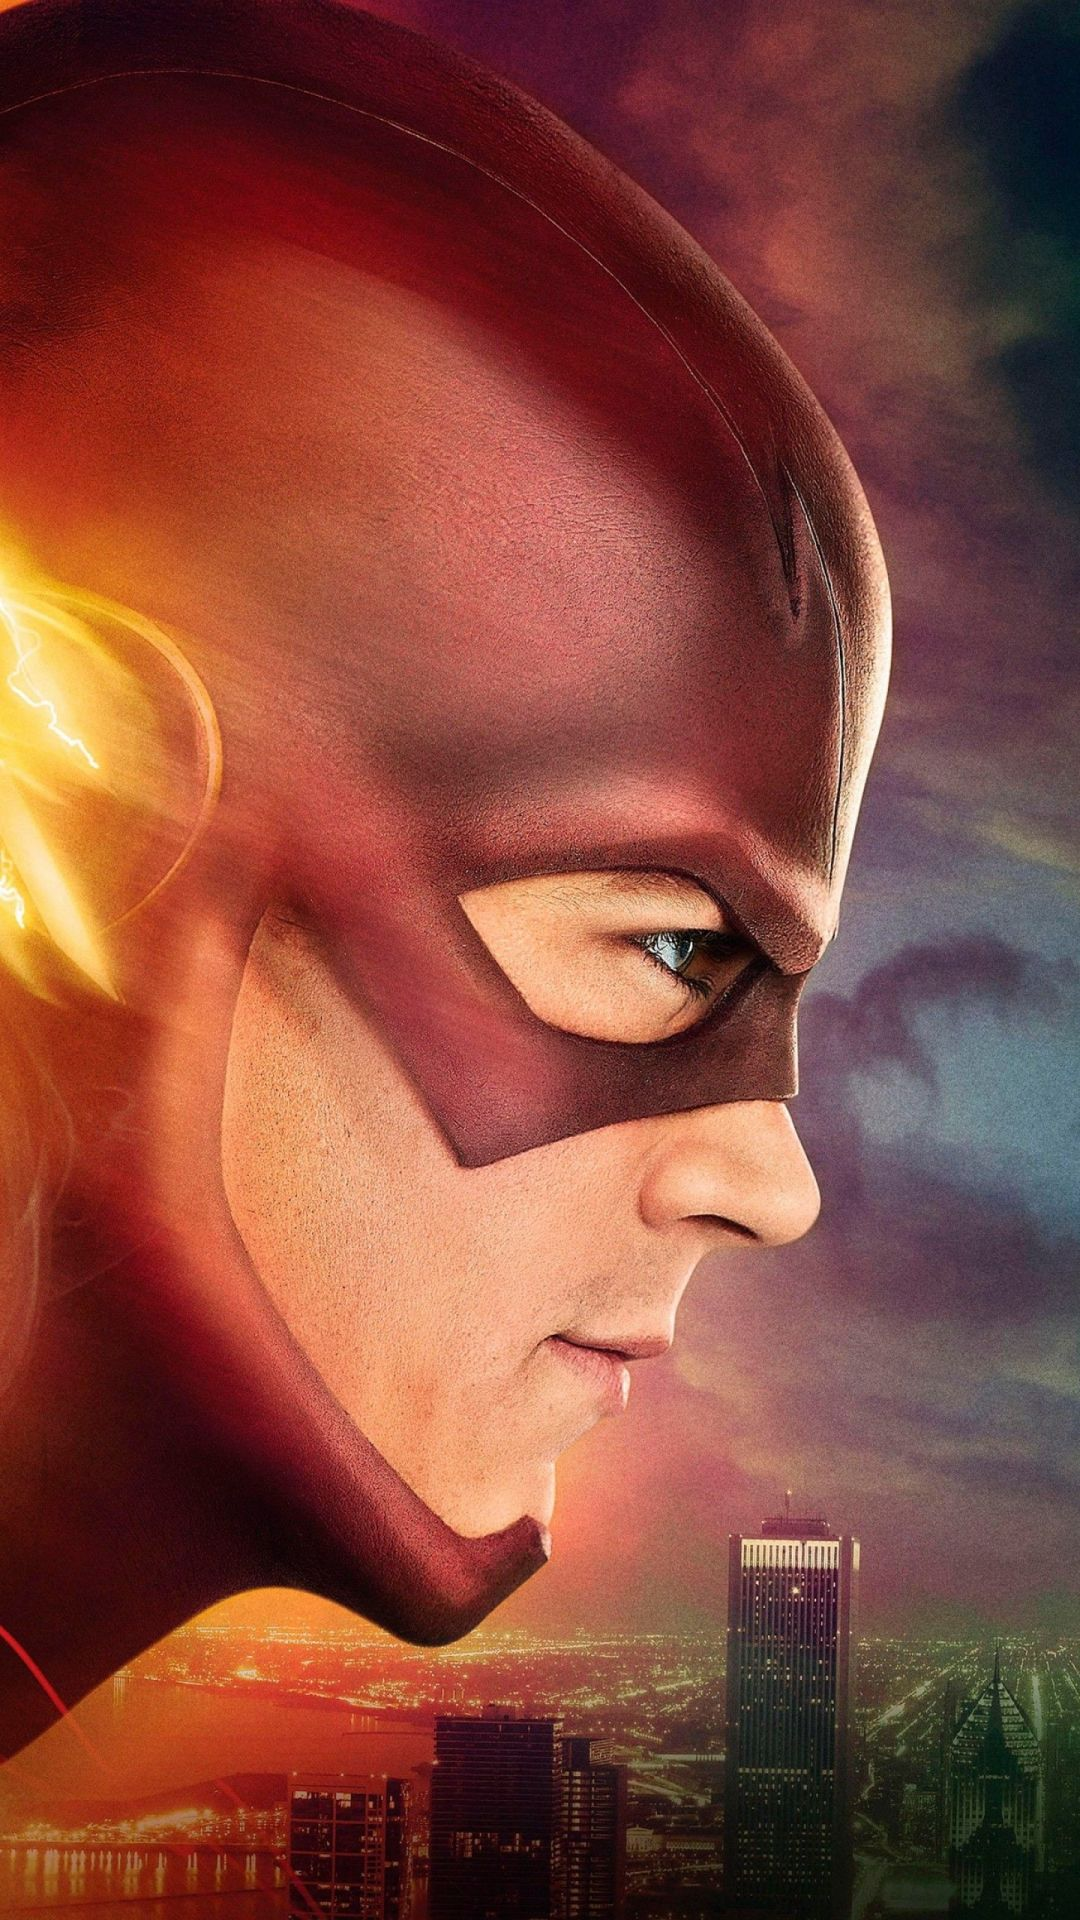 45 The Flash Tv Android Iphone Desktop Hd Backgrounds